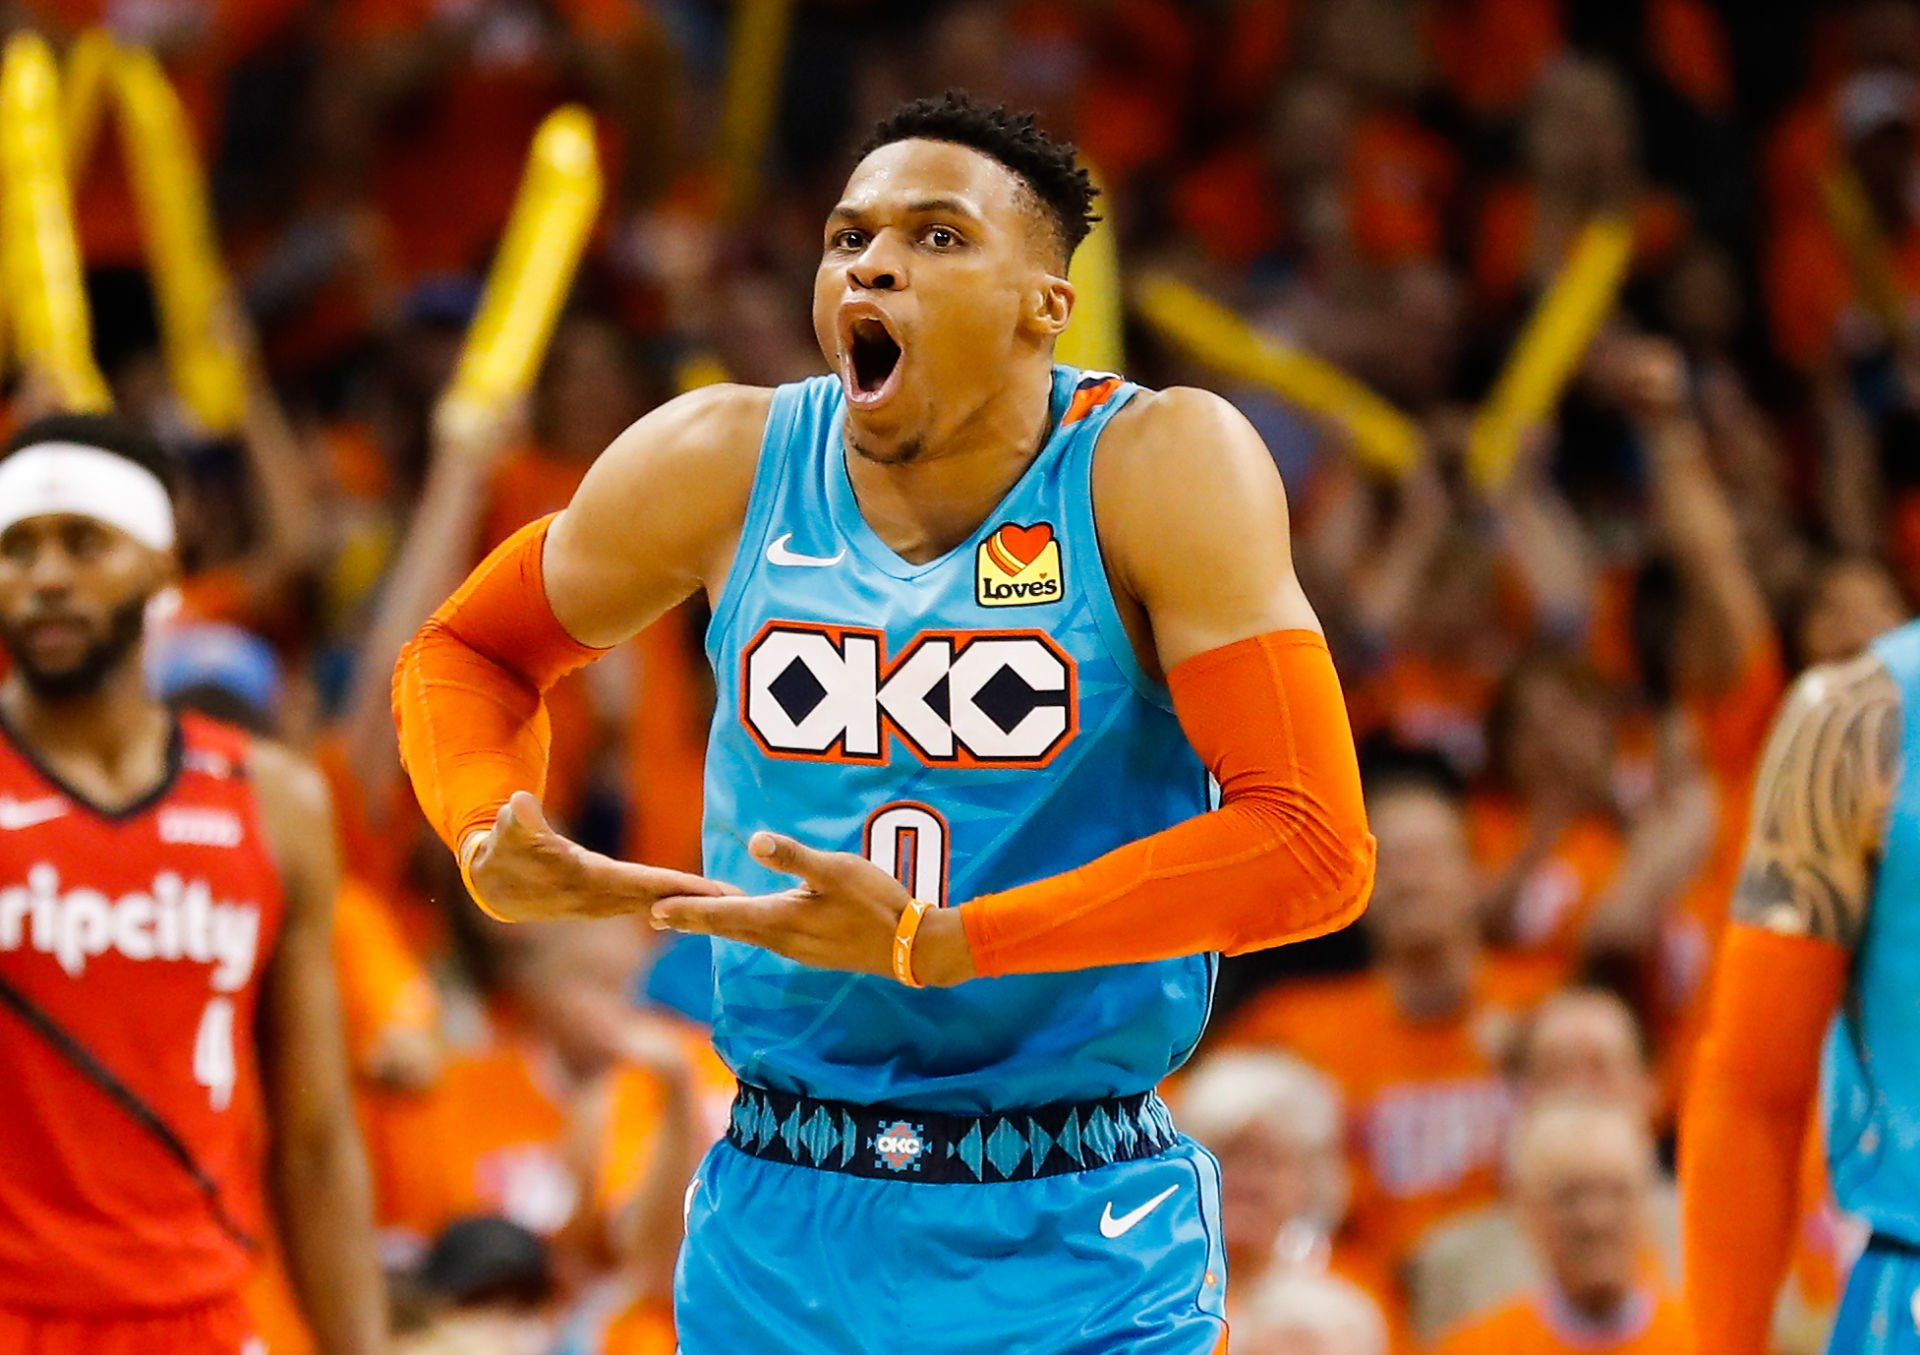 Apr 19, 2019; Oklahoma City, OK, USA; Oklahoma City Thunder guard Russell Westbrook (0) reacts after scoring against the Portland Trail Blazers during the second half in game three of the first round of the 2019 NBA Playoffs at Chesapeake Energy Arena.  Photo : Alonzo Adams / SUSA / Icon Sport  KOSZYKOWKA MEZCZYZN NBA FOT. ICON SPORT/NEWSPIX.PL POLAND ONLY !!! --- Newspix.pl *** Local Caption *** www.newspix.pl  mail us: info@newspix.pl call us: 0048 022 23 22 222 --- Polish Picture Agency by Ringier Axel Springer Poland